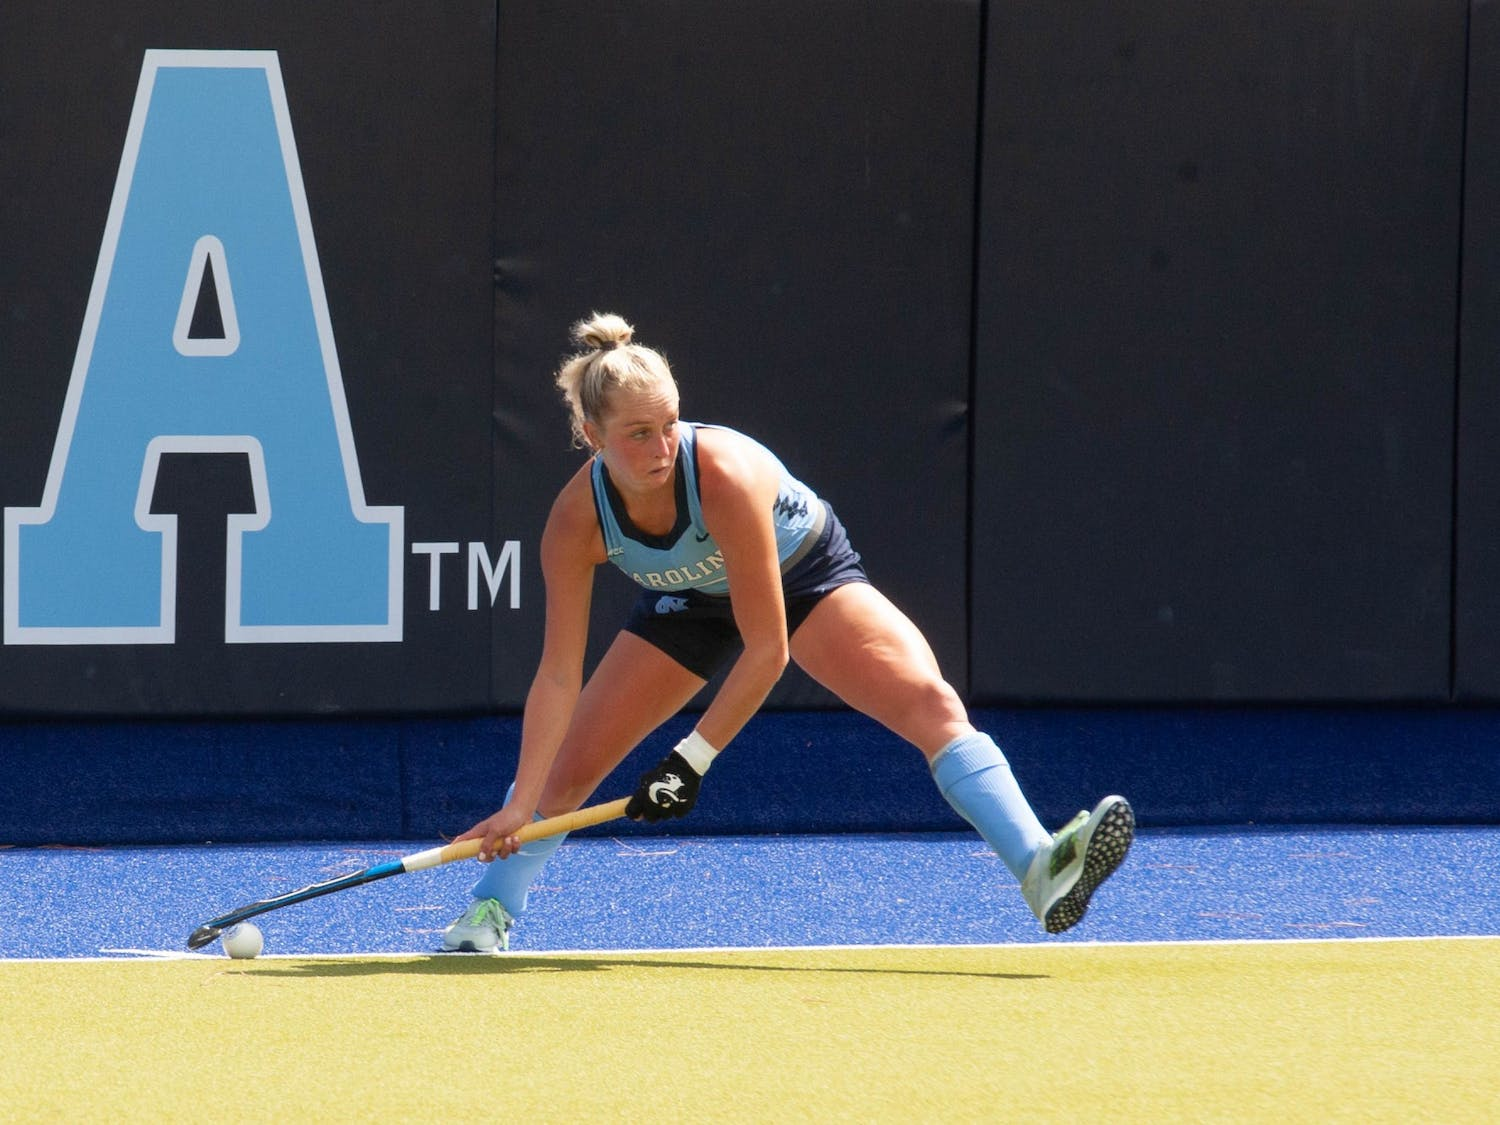 UNC junior midfielder Paityn Wirth (10) passes the ball during the field hockey game against the Miami Redhawks at Karen Shelton Stadium on Sept. 19, 2021. The Tar Heels defeated the Redhawks 7-2.